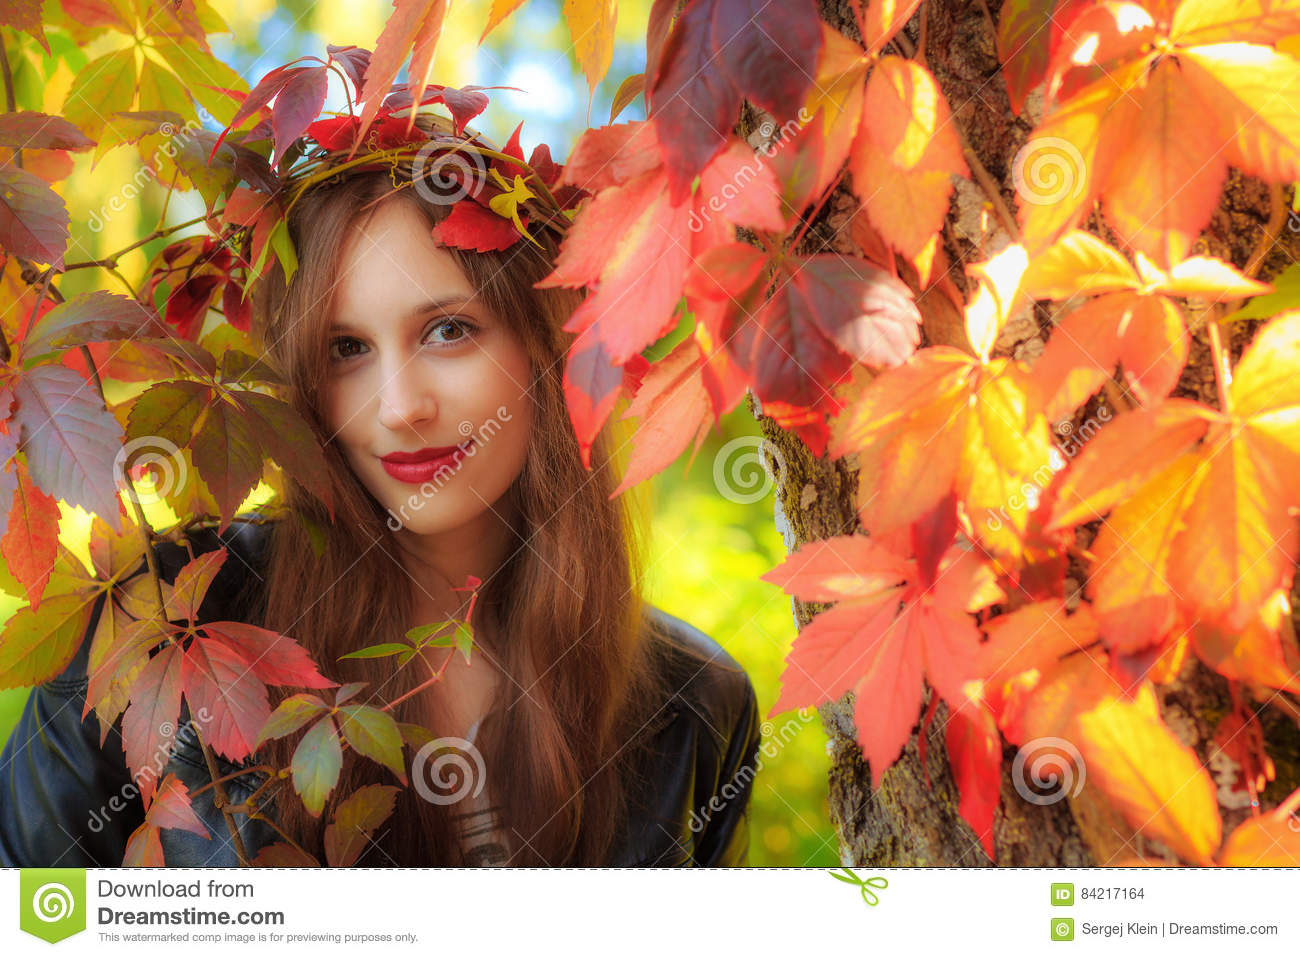 A young woman in an autumn forest with leaves in her hair